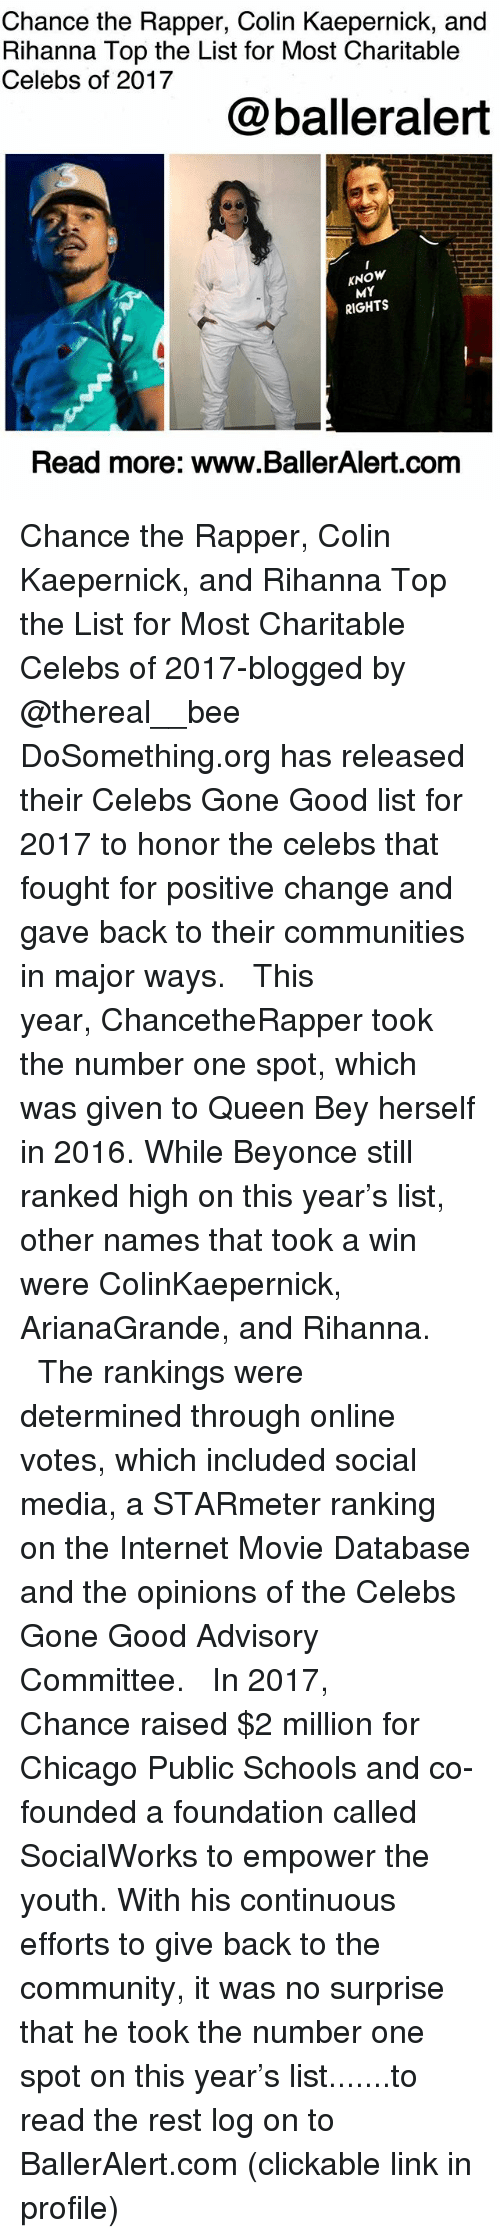 Beyonce, Chance the Rapper, and Chicago: Chance the Rapper, Colin Kaepernick, and  Rihanna Top the List for Most Charitable  Celebs of 2017  @balleralert  KNOW  MY  RIGHTS  Read more: www.BallerAlert.com Chance the Rapper, Colin Kaepernick, and Rihanna Top the List for Most Charitable Celebs of 2017-blogged by @thereal__bee ⠀⠀⠀⠀⠀⠀⠀⠀⠀ ⠀⠀ DoSomething.org has released their Celebs Gone Good list for 2017 to honor the celebs that fought for positive change and gave back to their communities in major ways. ⠀⠀⠀⠀⠀⠀⠀⠀⠀ ⠀⠀ This year, ChancetheRapper took the number one spot, which was given to Queen Bey herself in 2016. While Beyonce still ranked high on this year's list, other names that took a win were ColinKaepernick, ArianaGrande, and Rihanna. ⠀⠀⠀⠀⠀⠀⠀⠀⠀ ⠀⠀ The rankings were determined through online votes, which included social media, a STARmeter ranking on the Internet Movie Database and the opinions of the Celebs Gone Good Advisory Committee. ⠀⠀⠀⠀⠀⠀⠀⠀⠀ ⠀⠀ In 2017, Chance raised $2 million for Chicago Public Schools and co-founded a foundation called SocialWorks to empower the youth. With his continuous efforts to give back to the community, it was no surprise that he took the number one spot on this year's list.......to read the rest log on to BallerAlert.com (clickable link in profile)